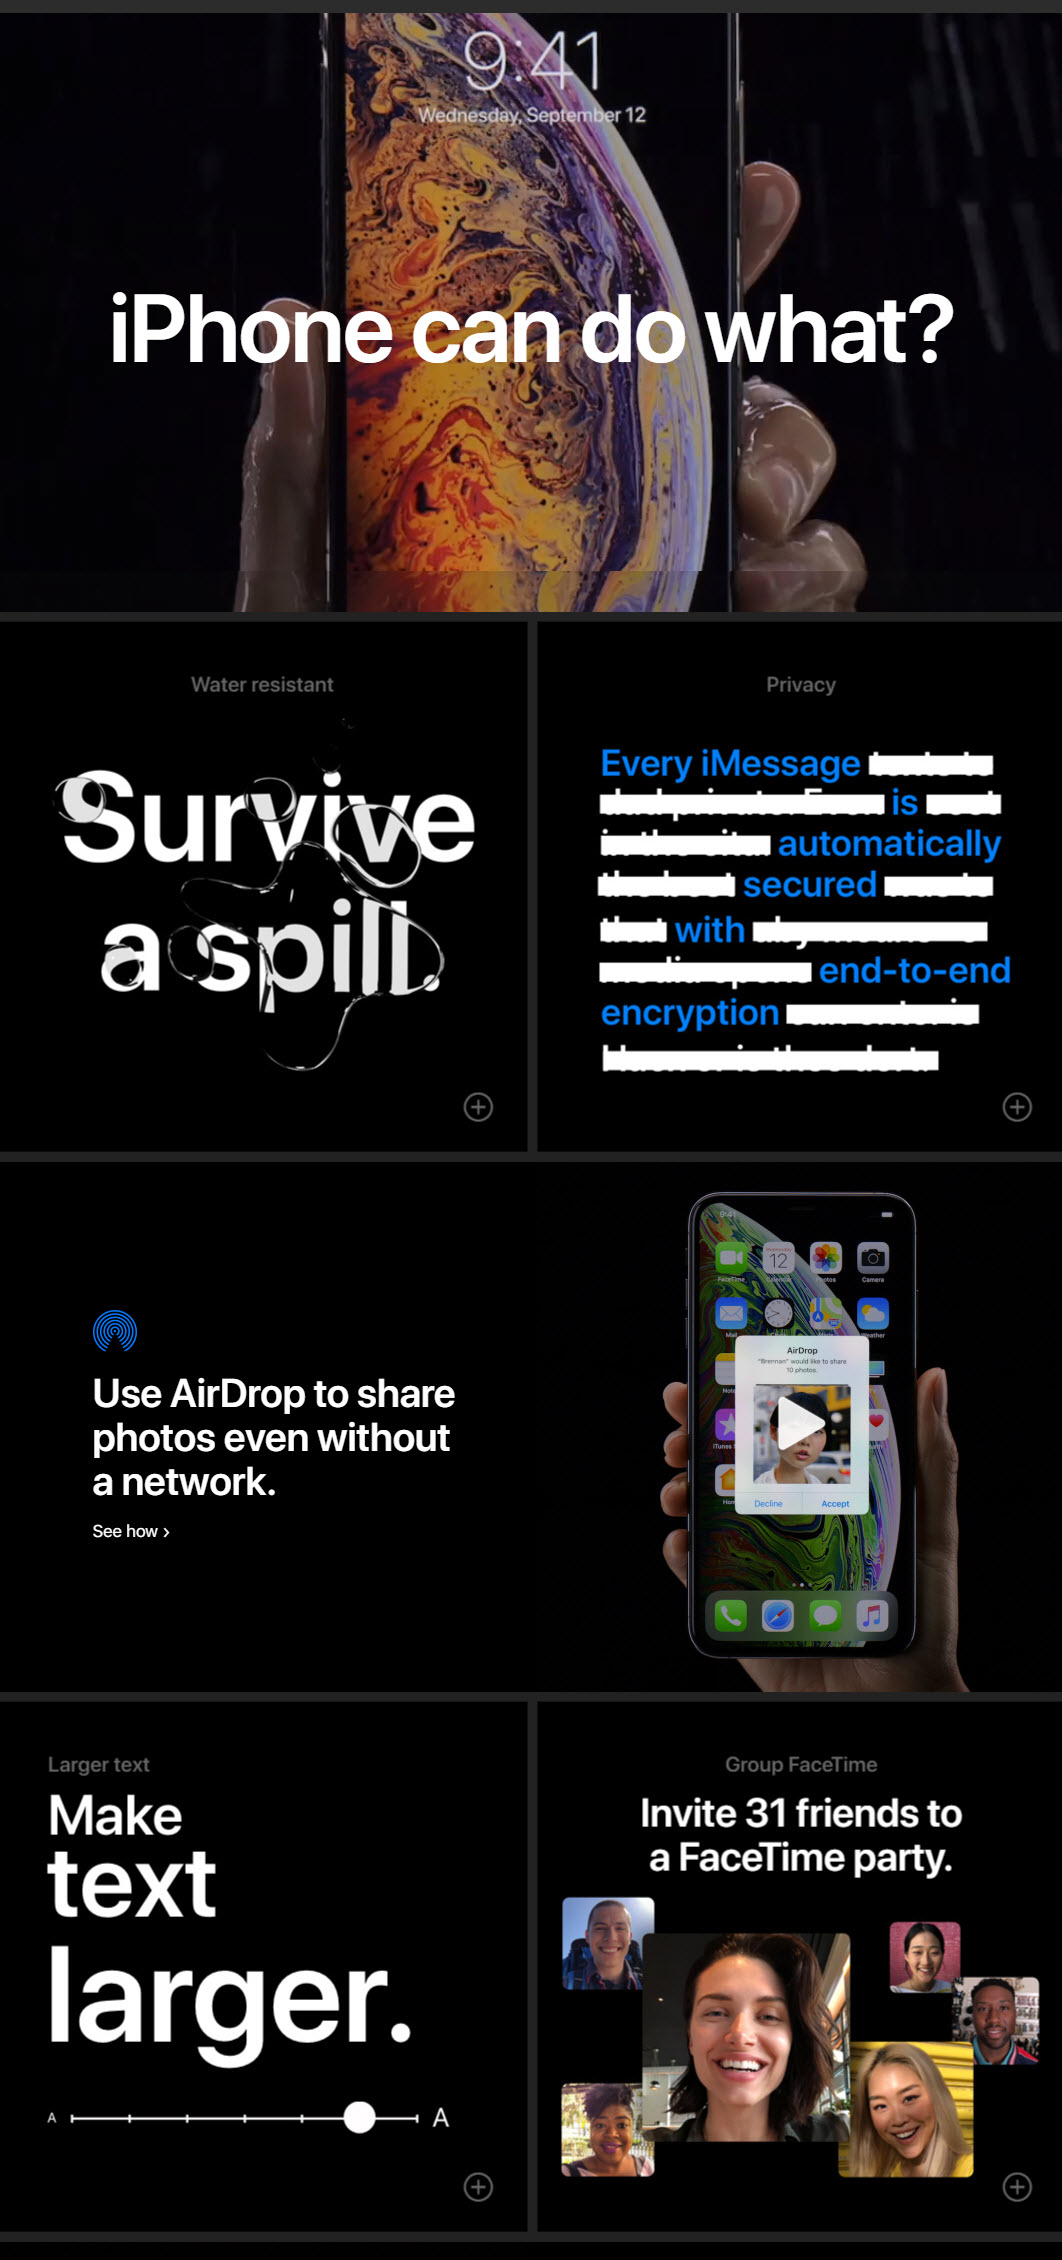 Apple Released That Iphone Page And Video Img 2